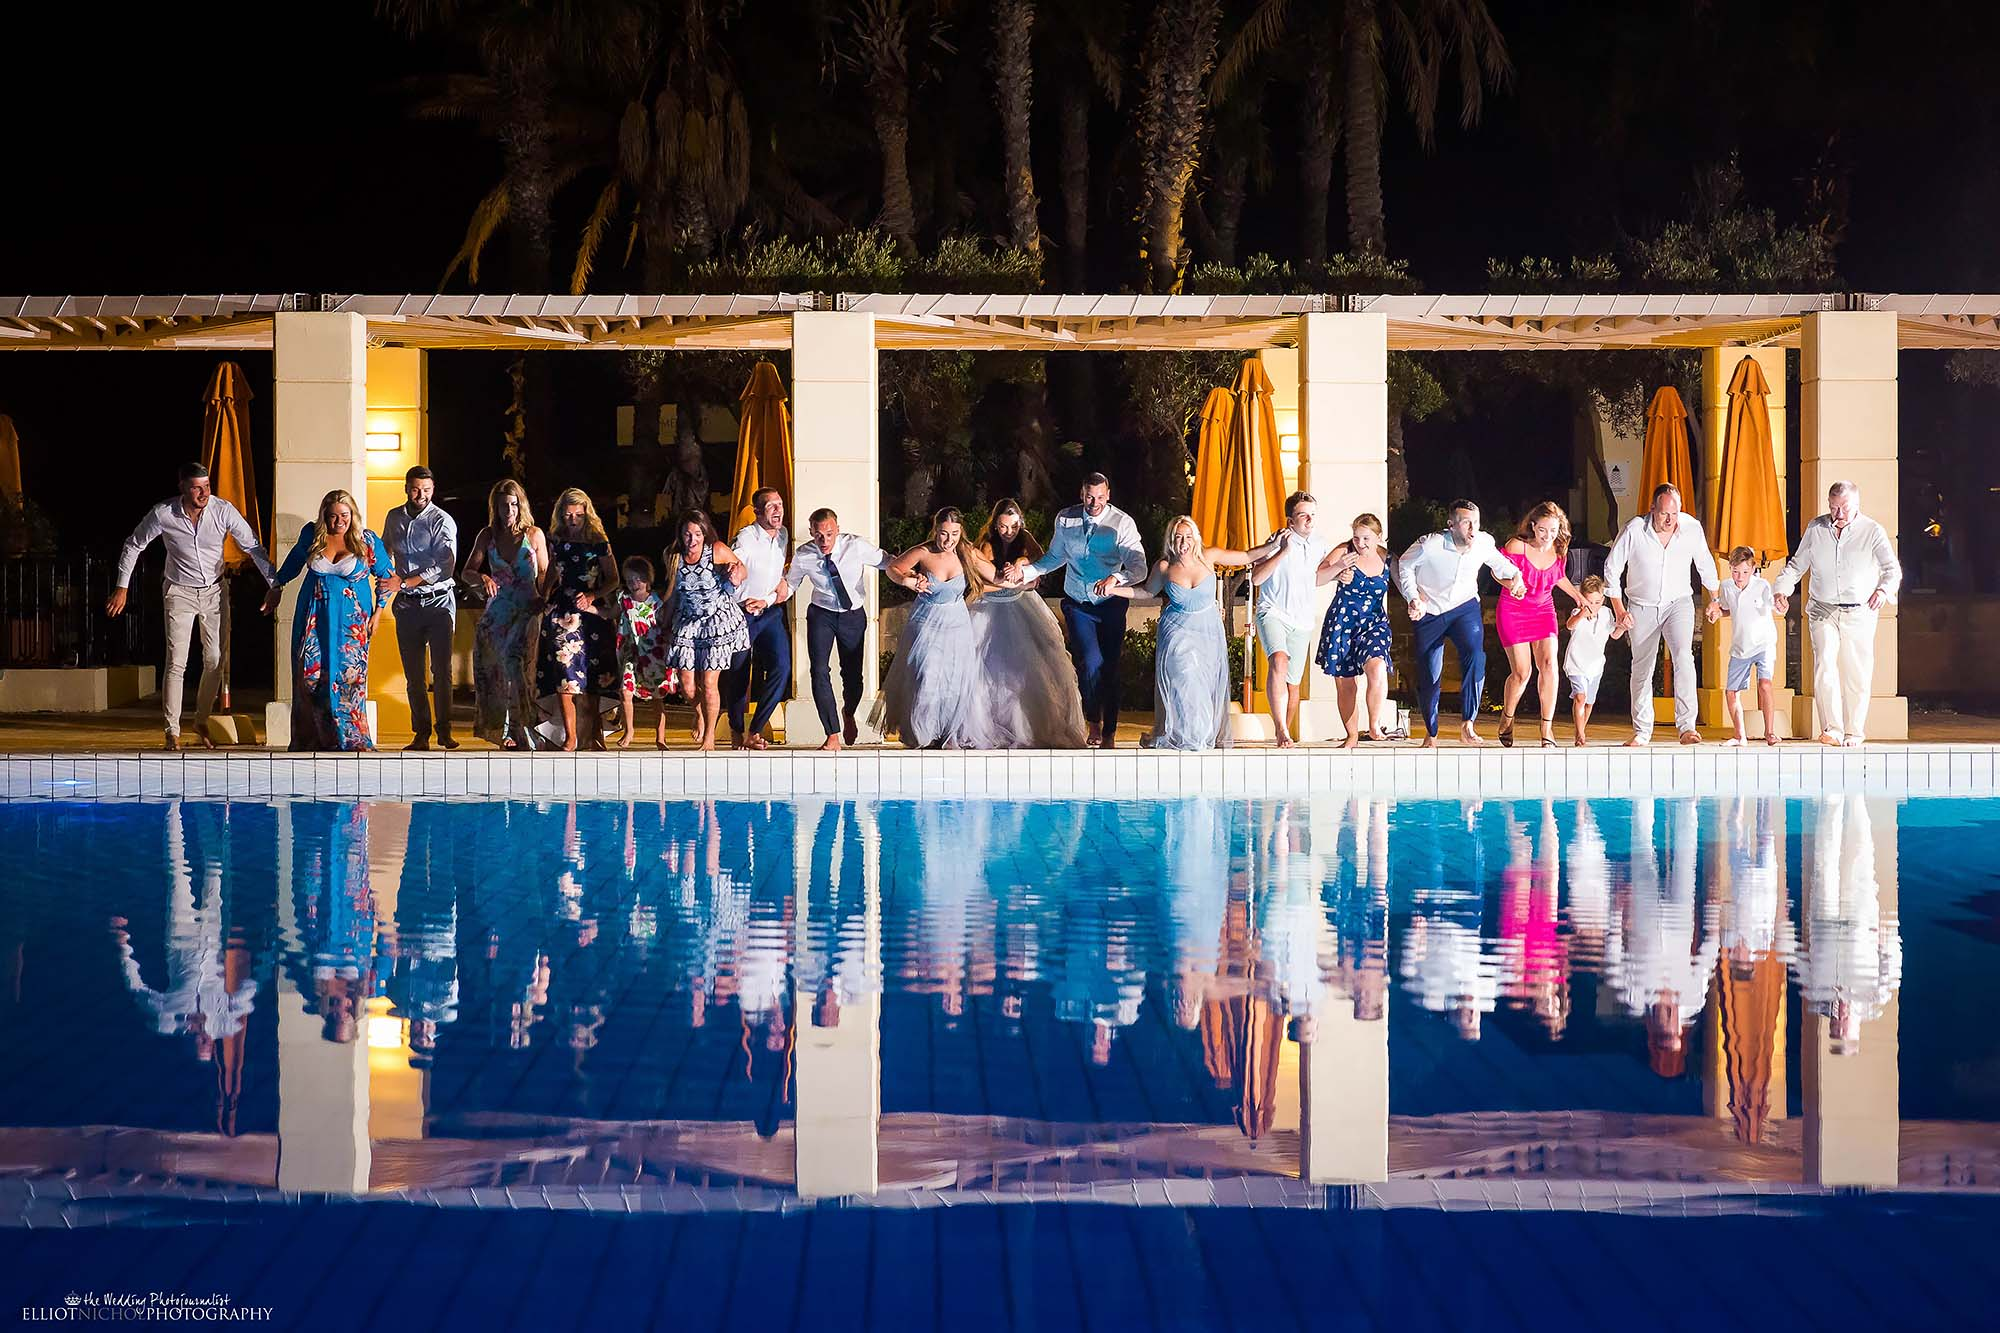 Blue wedding dress bride jumping into a swimming pool with her wedding guests.